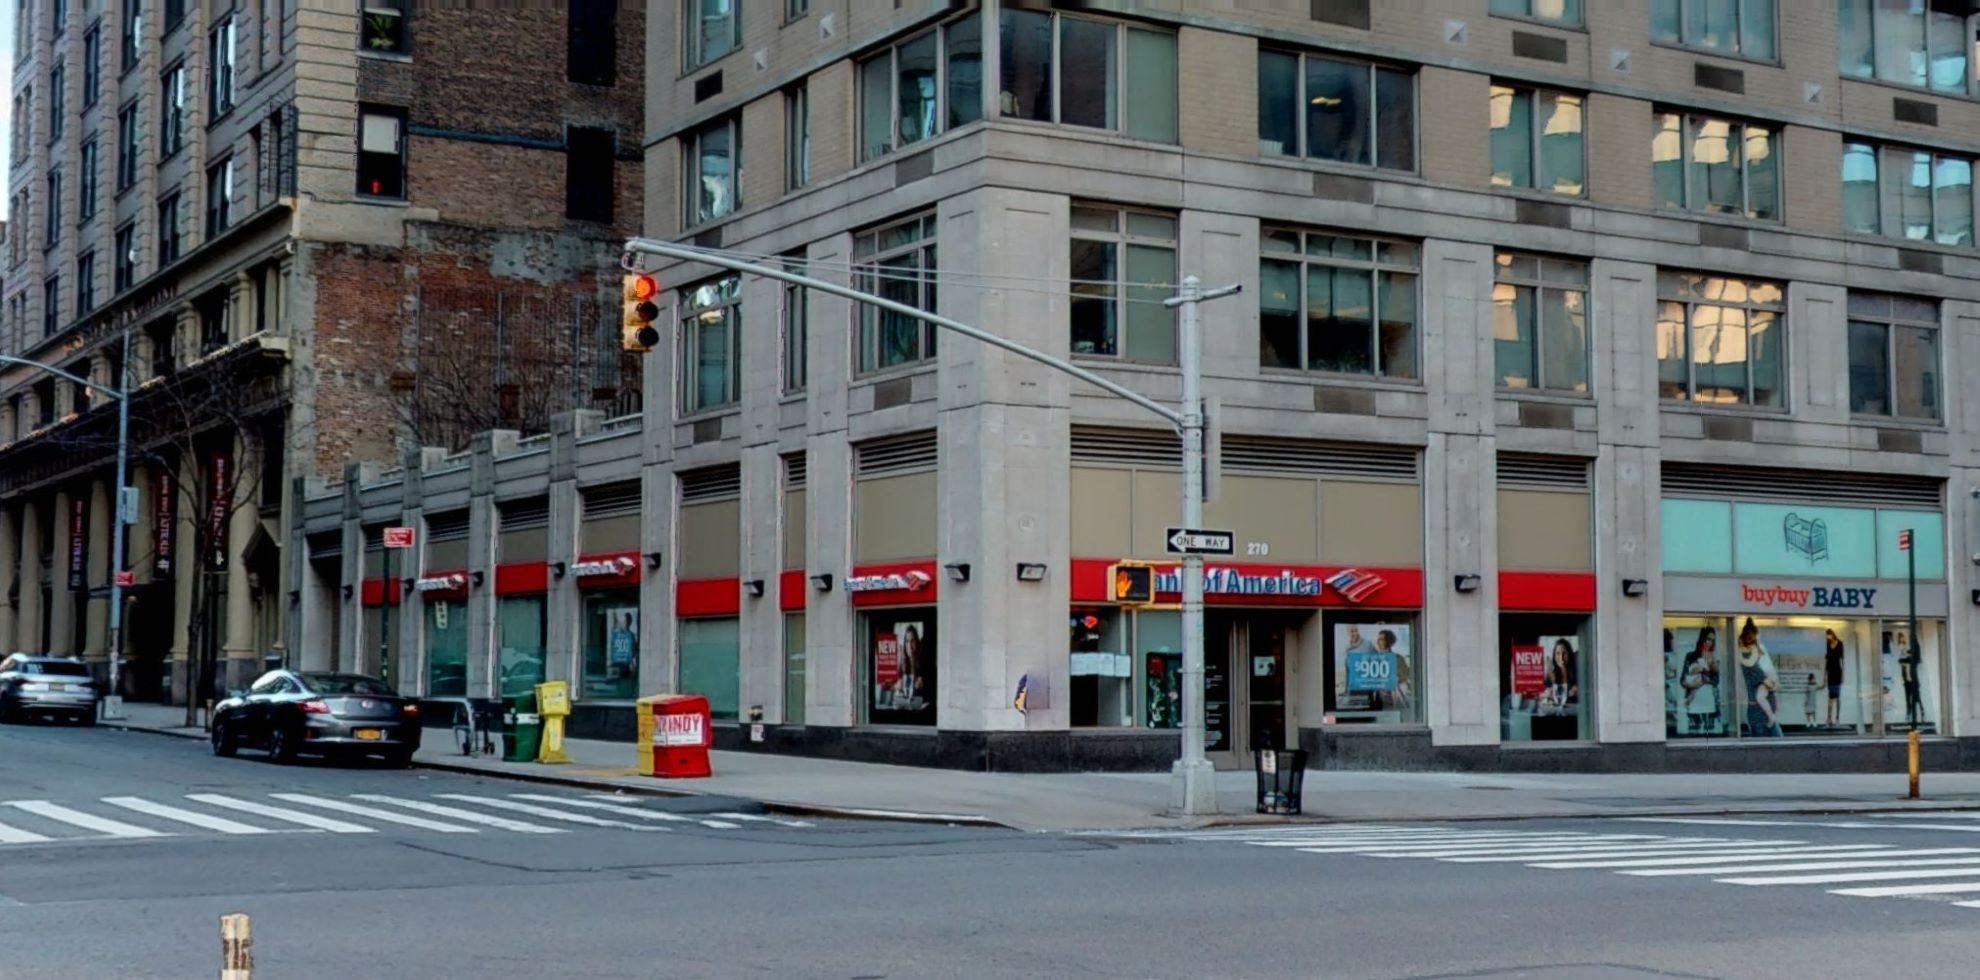 Bank of America financial center with walk-up ATM | 270 7th Ave, New York, NY 10001